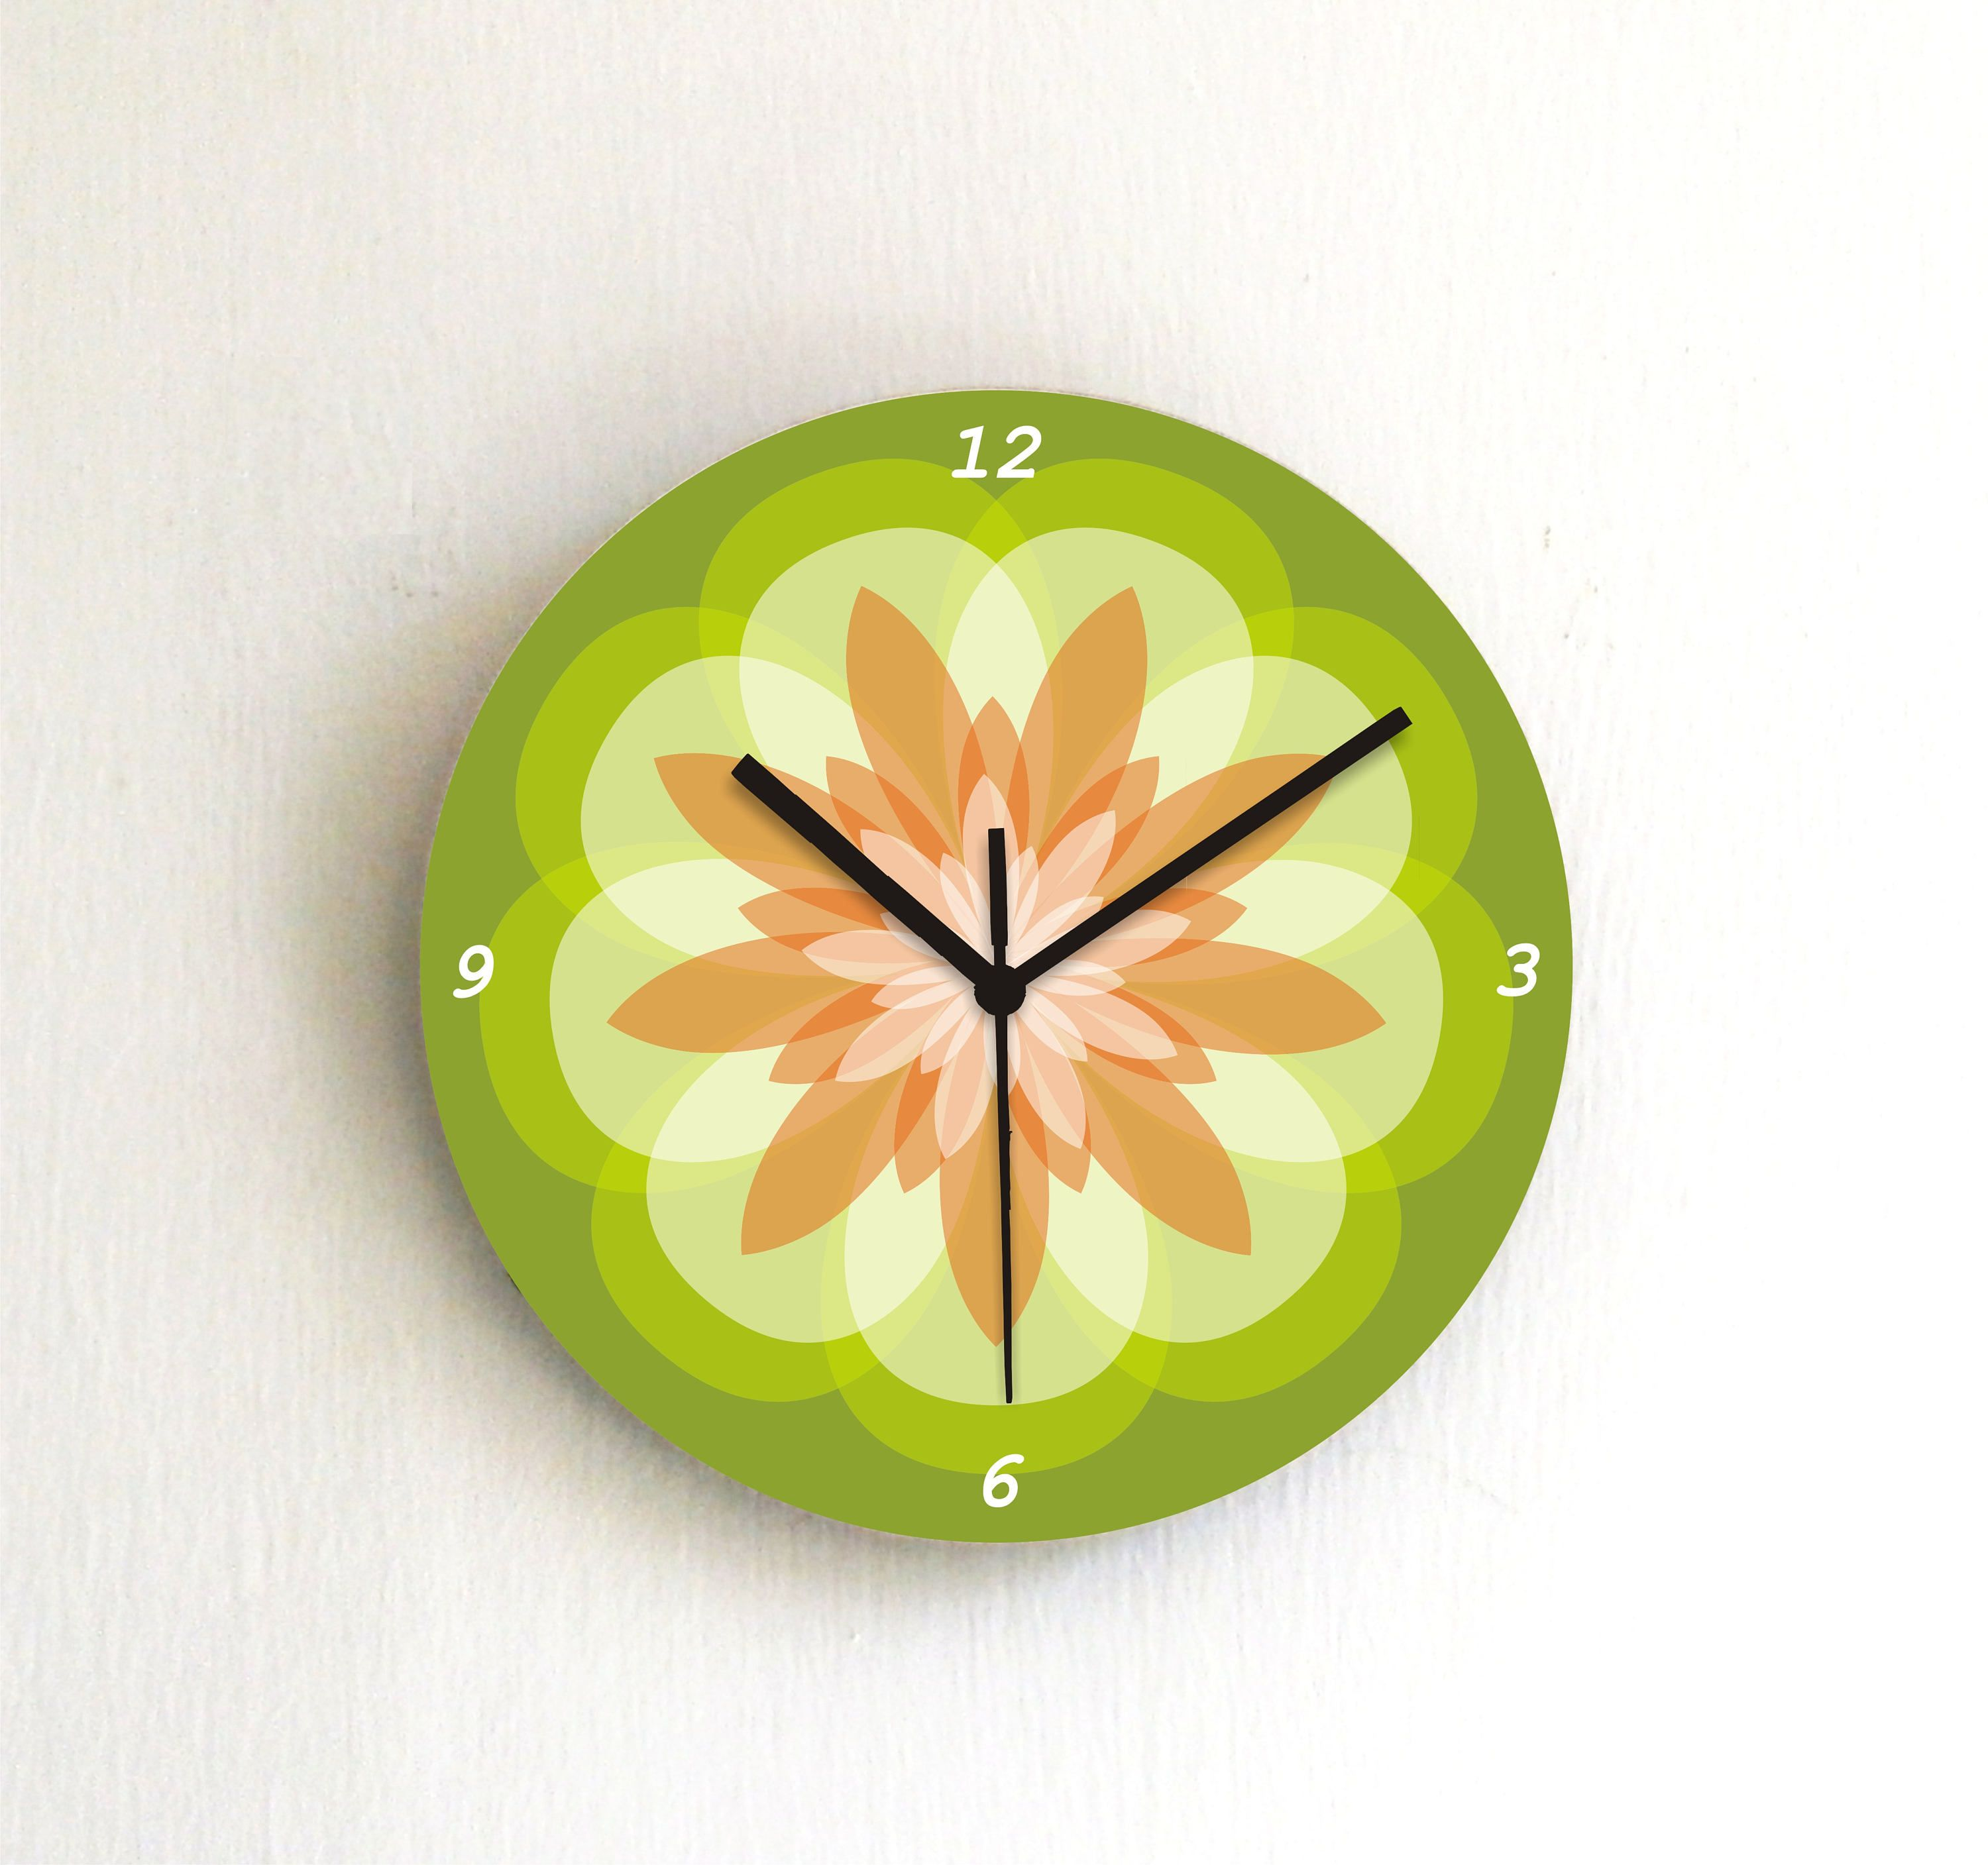 Green mandala pastel wall clock,geometric wooden printed patterned ...